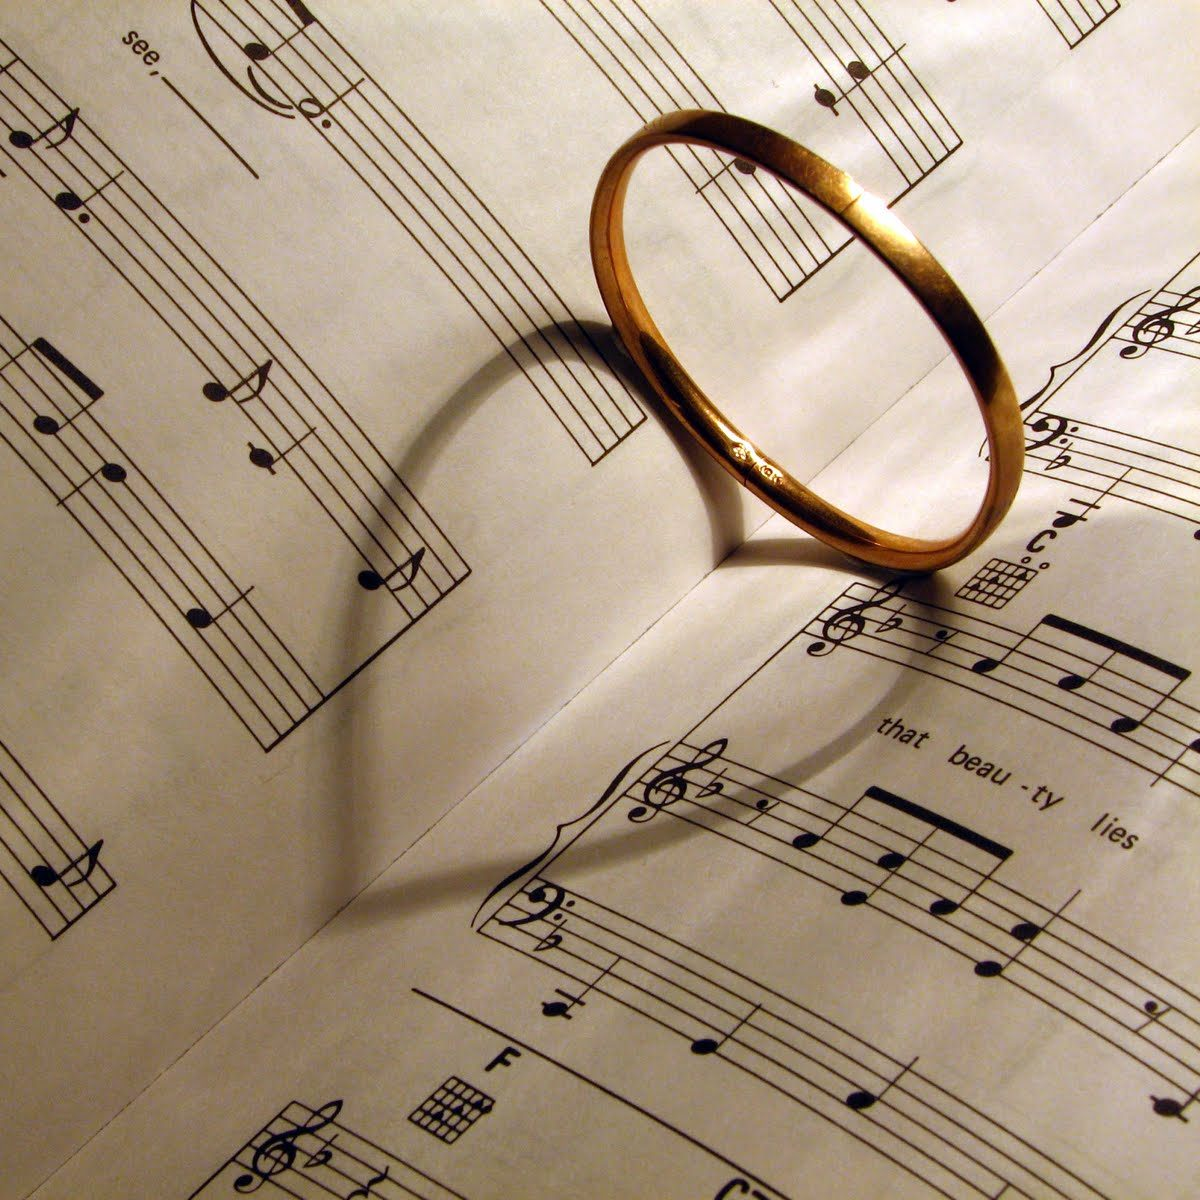 Wedding ring making heart shaped shadow on sheet music.